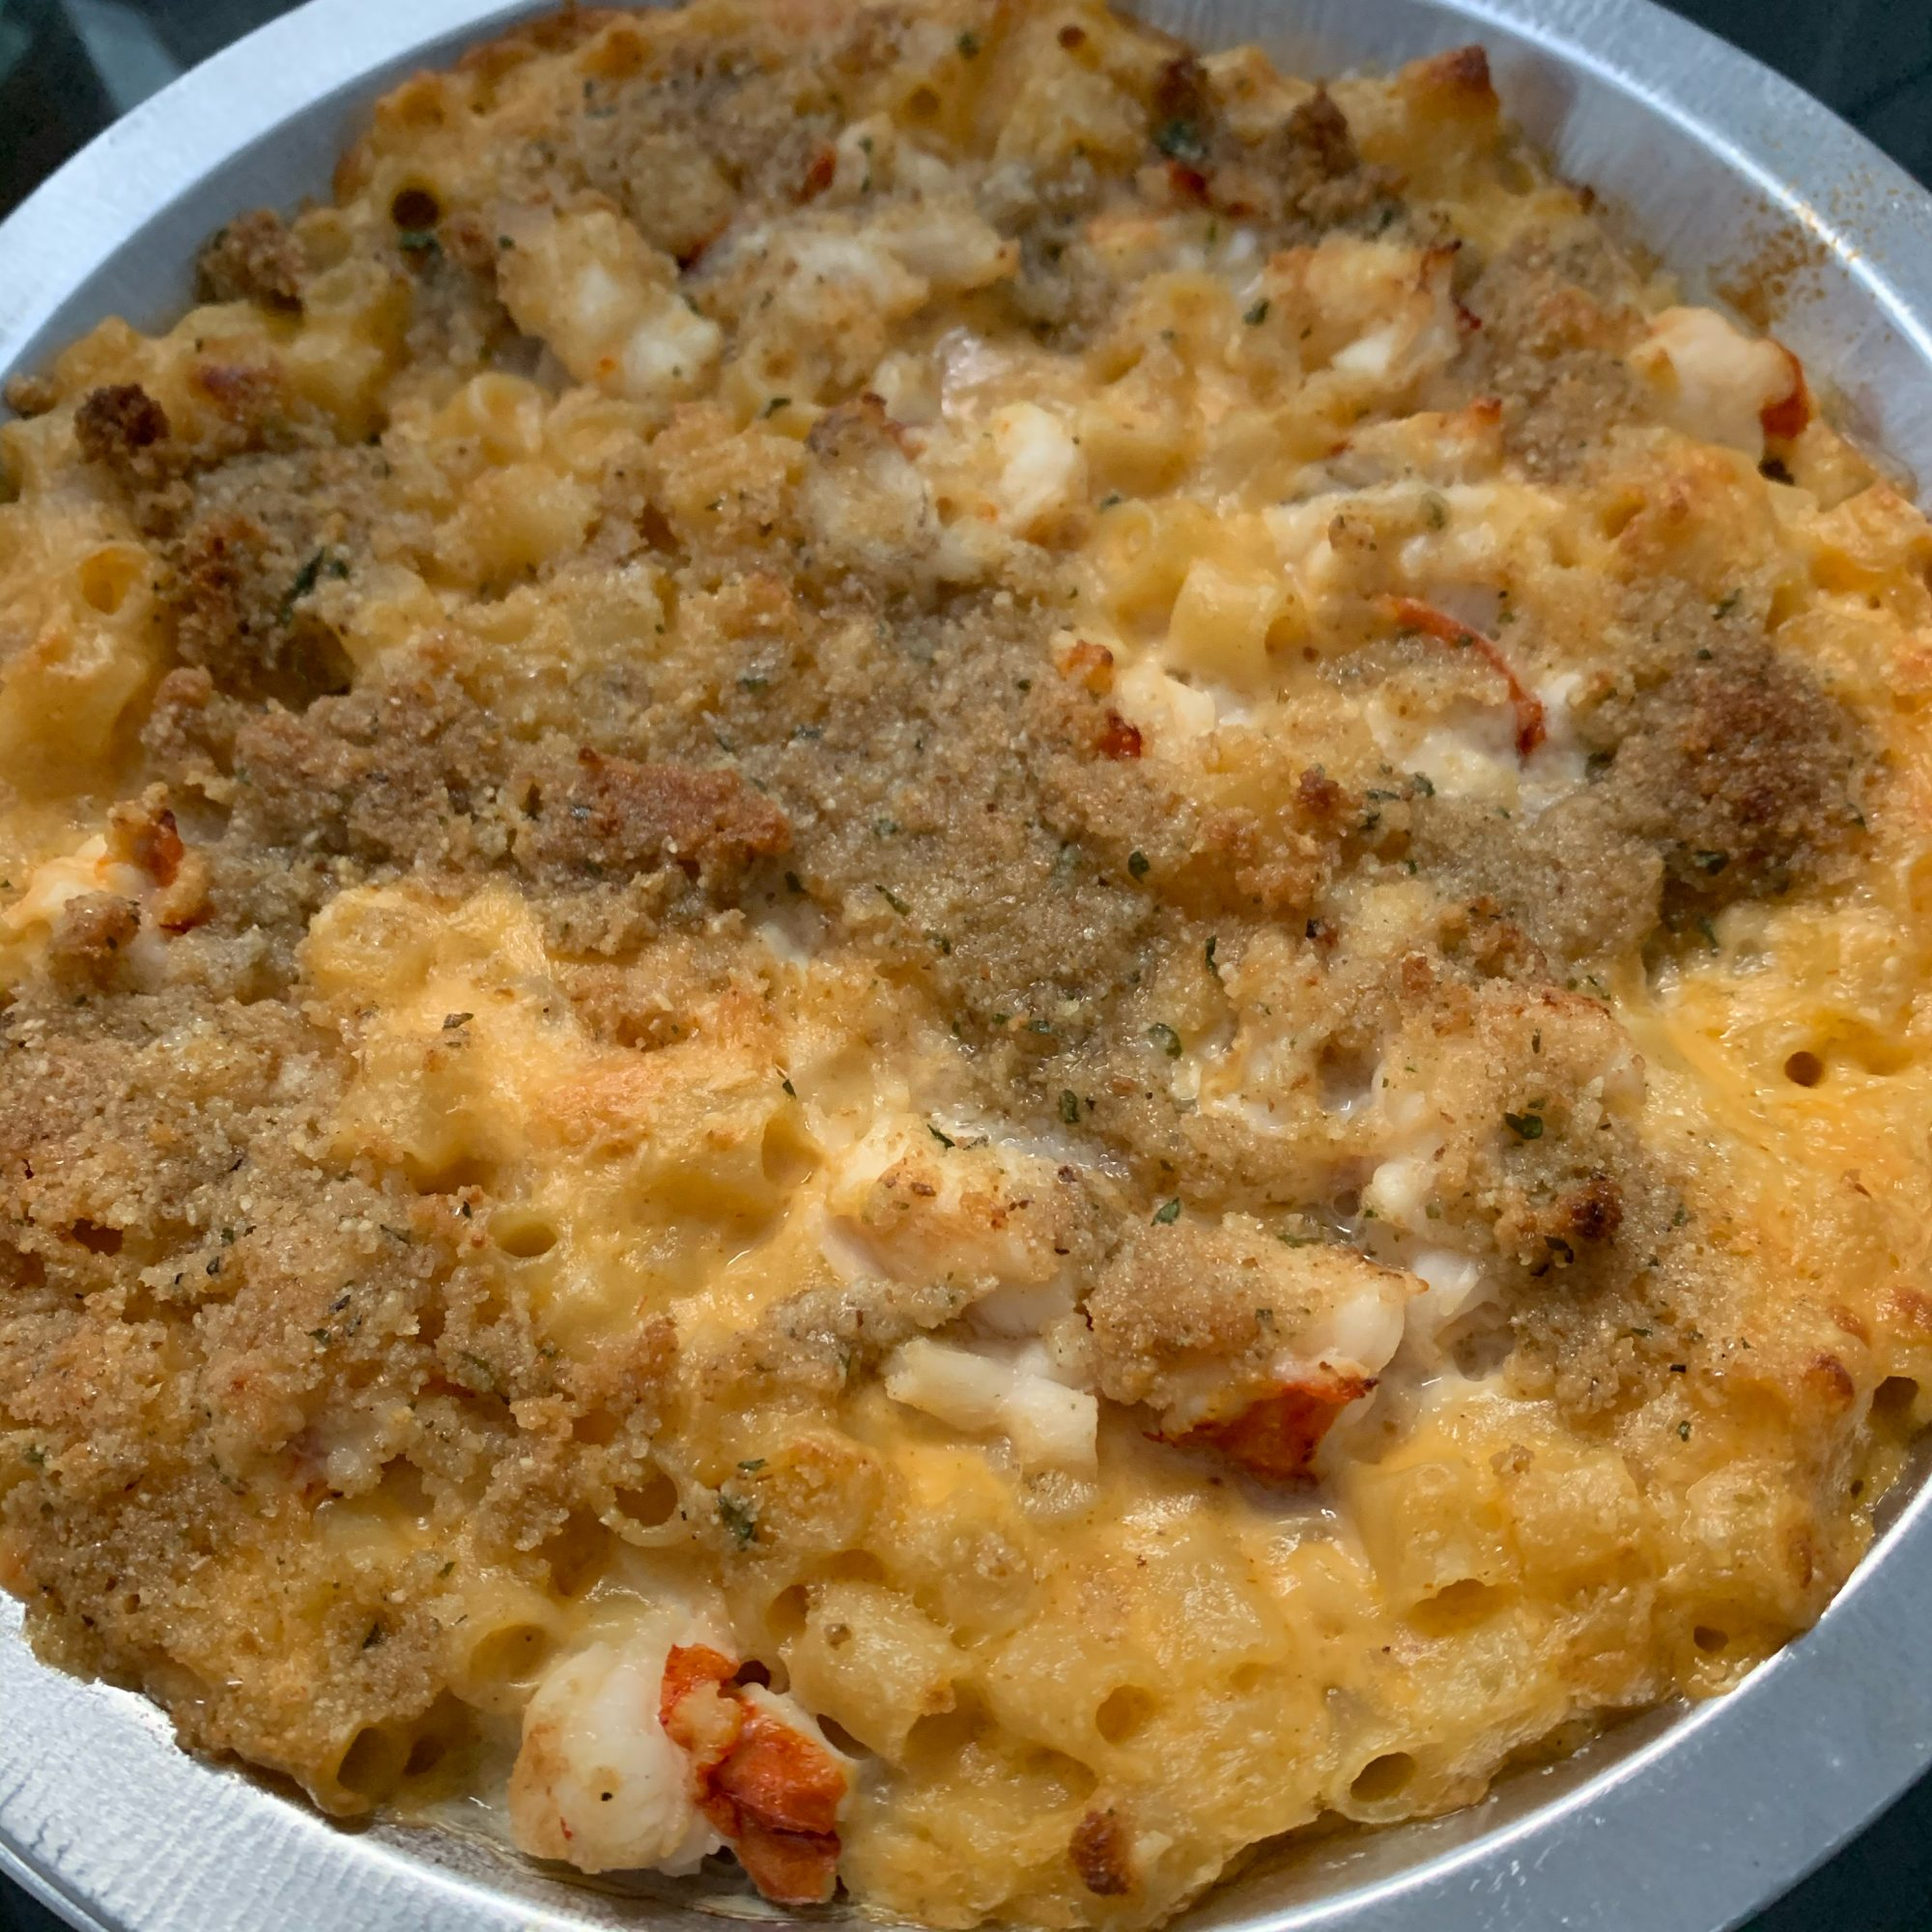 Chef John's Lobster Mac and Cheese in a white dish